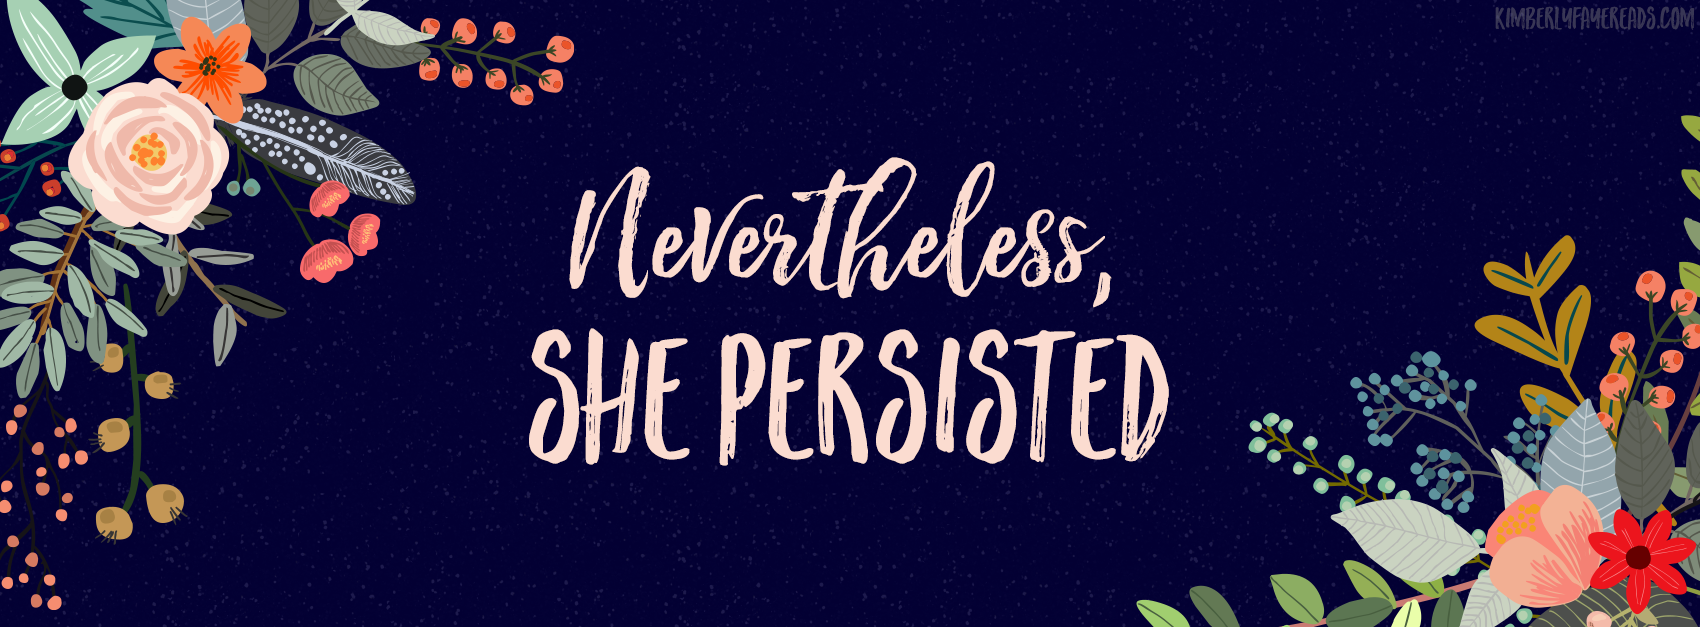 #FREE Nevertheless, She Persisted Facebook Cover Photo # ...